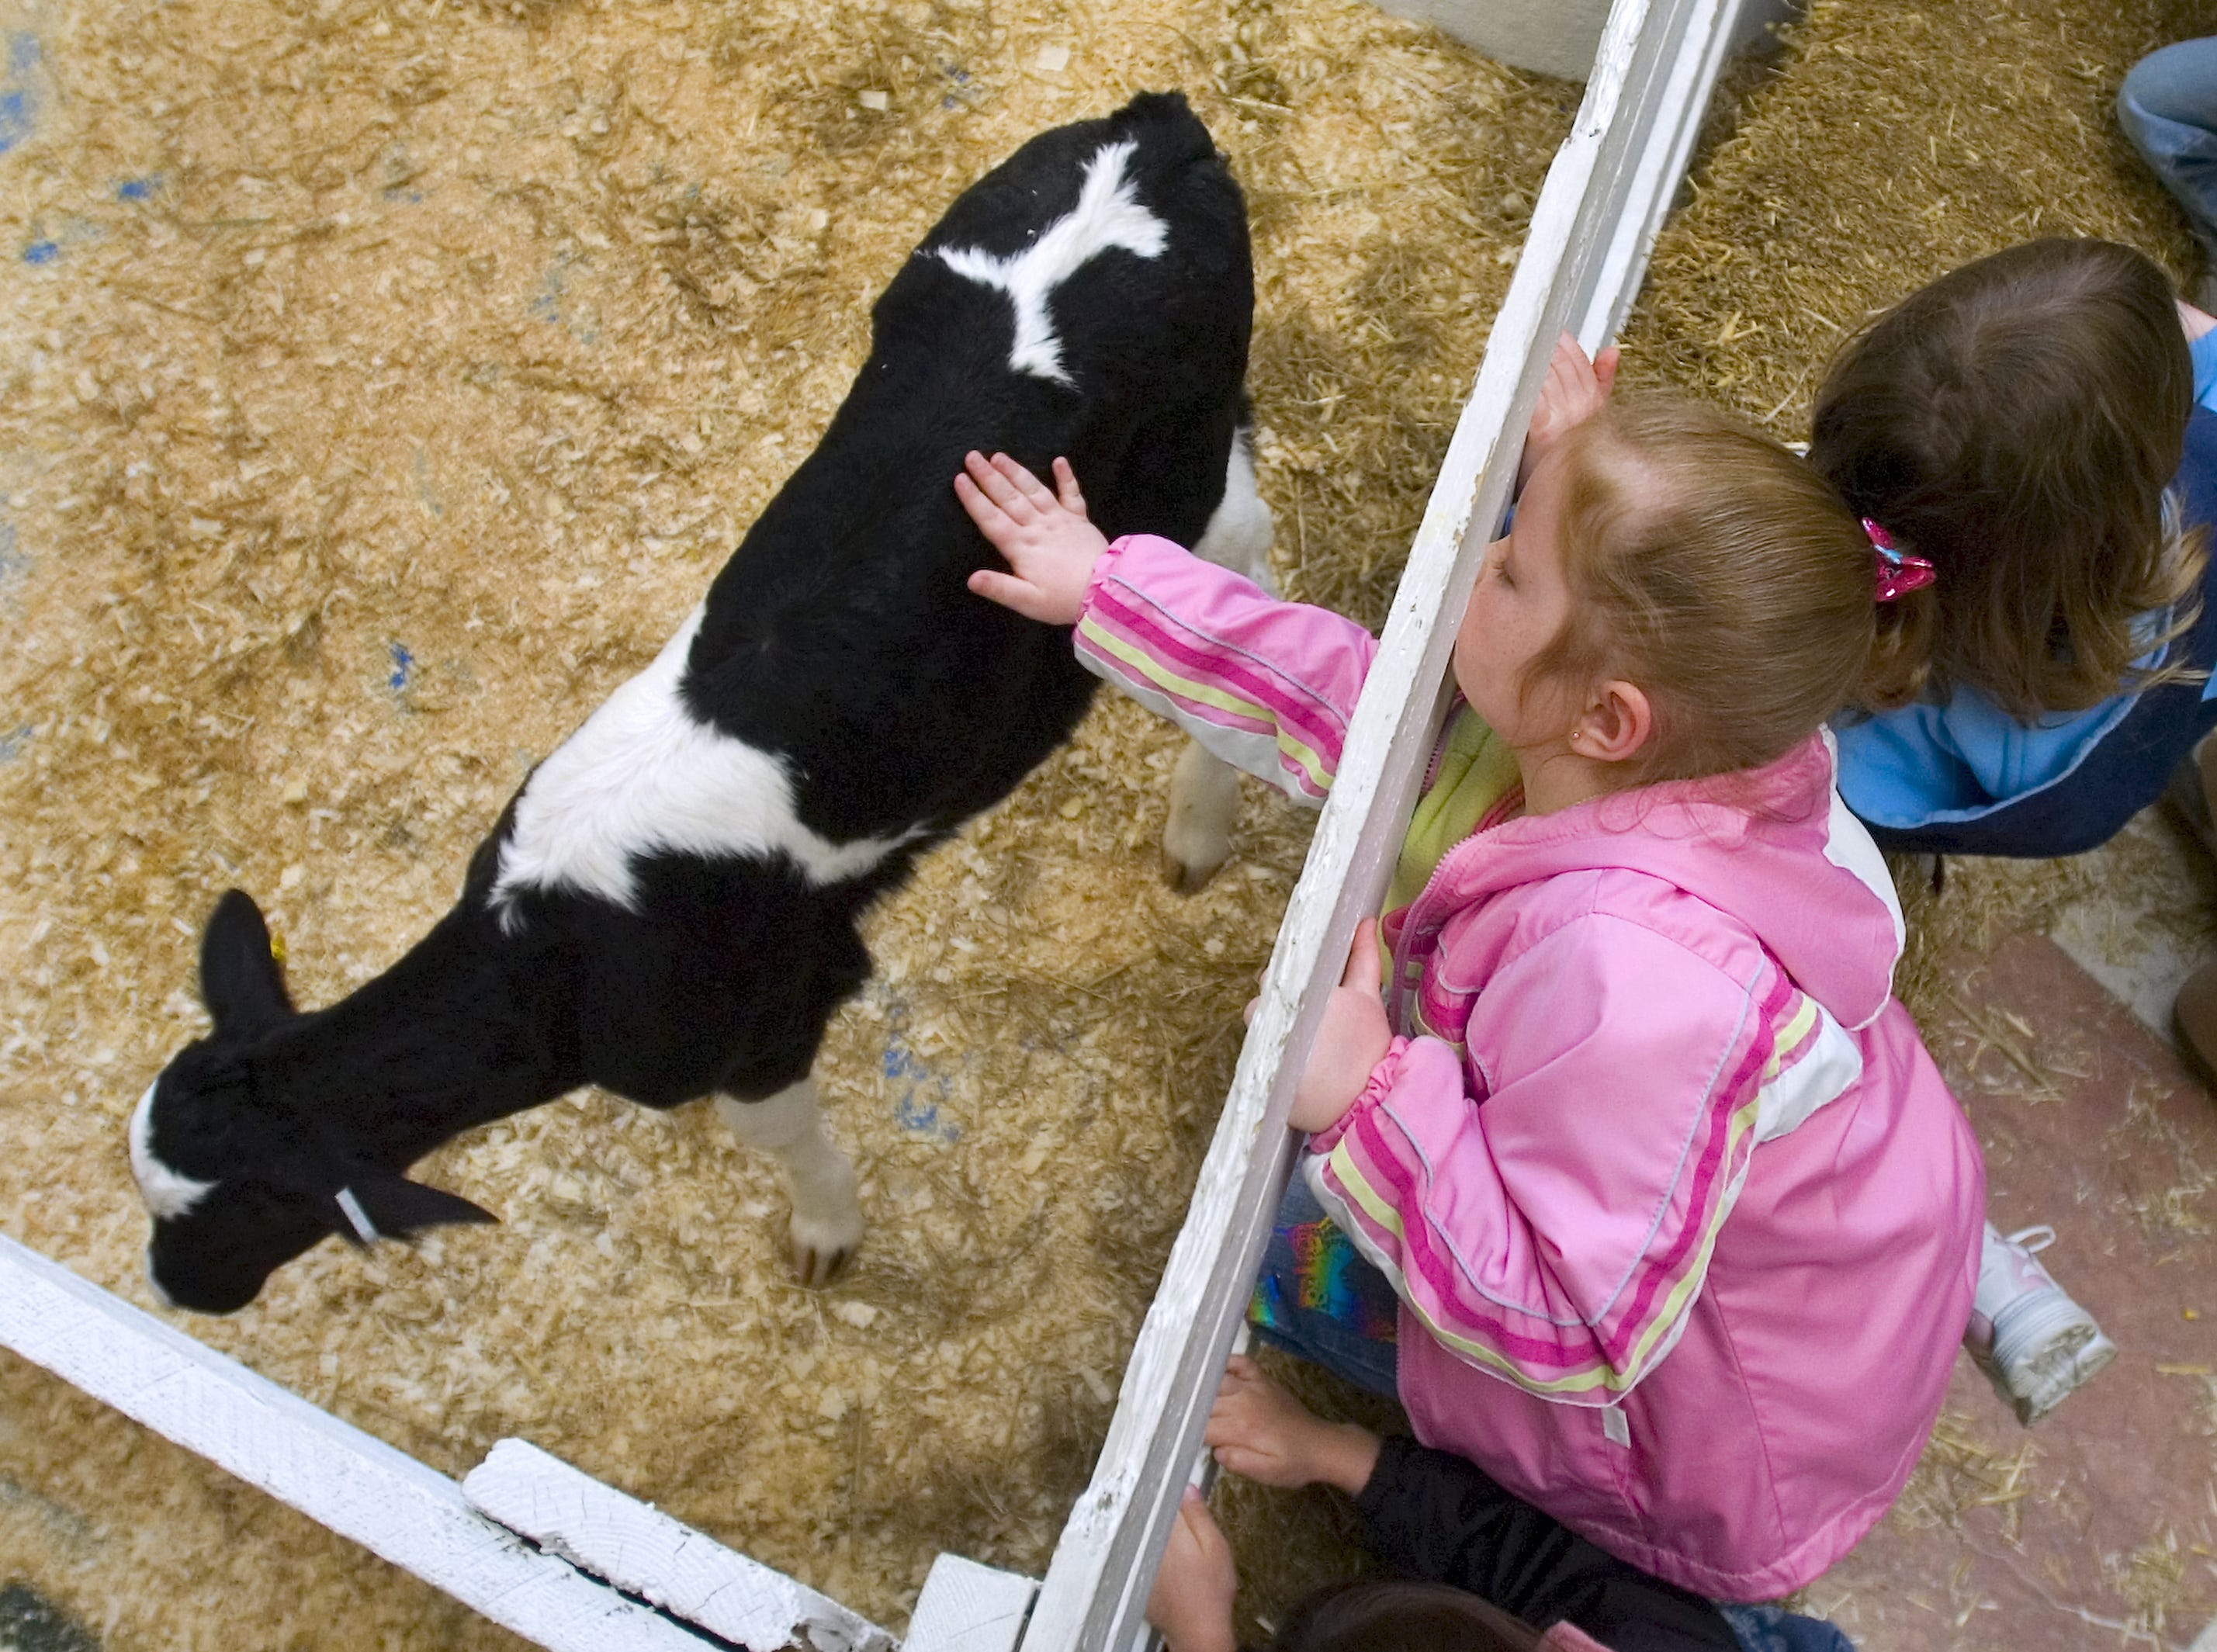 Katerine Zulko, 5, of Kirkwood pets a calf at Farm Days at the Oakdale Mall in Johnson City on April 6, 2008.